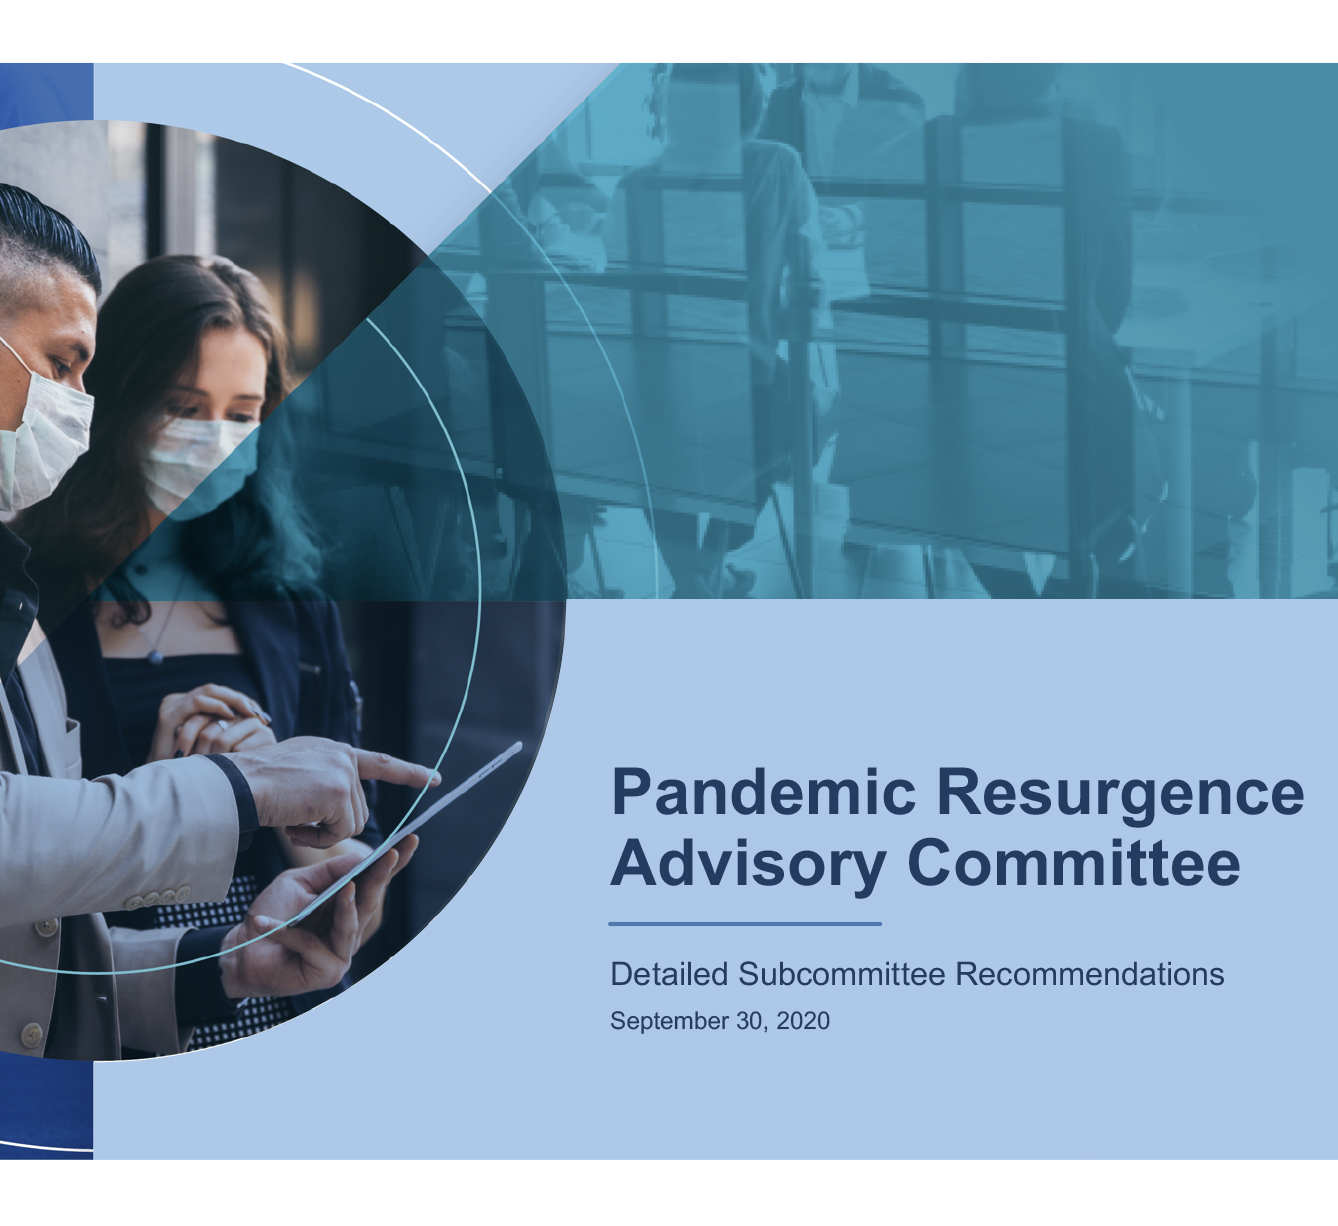 Pandemic Resurgence Advisory Committee Recommendations Cover